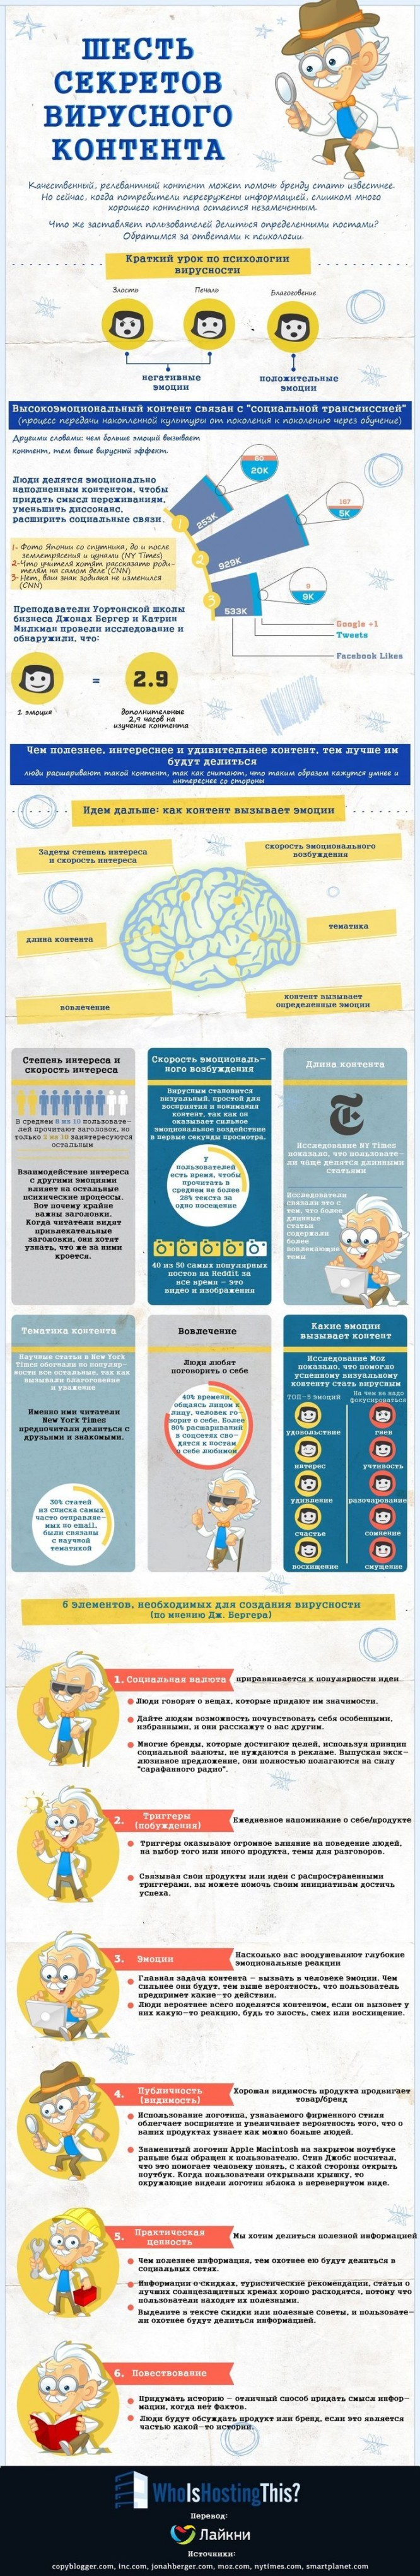 14-primerov-infografiki-po-kontent-marketingu_10